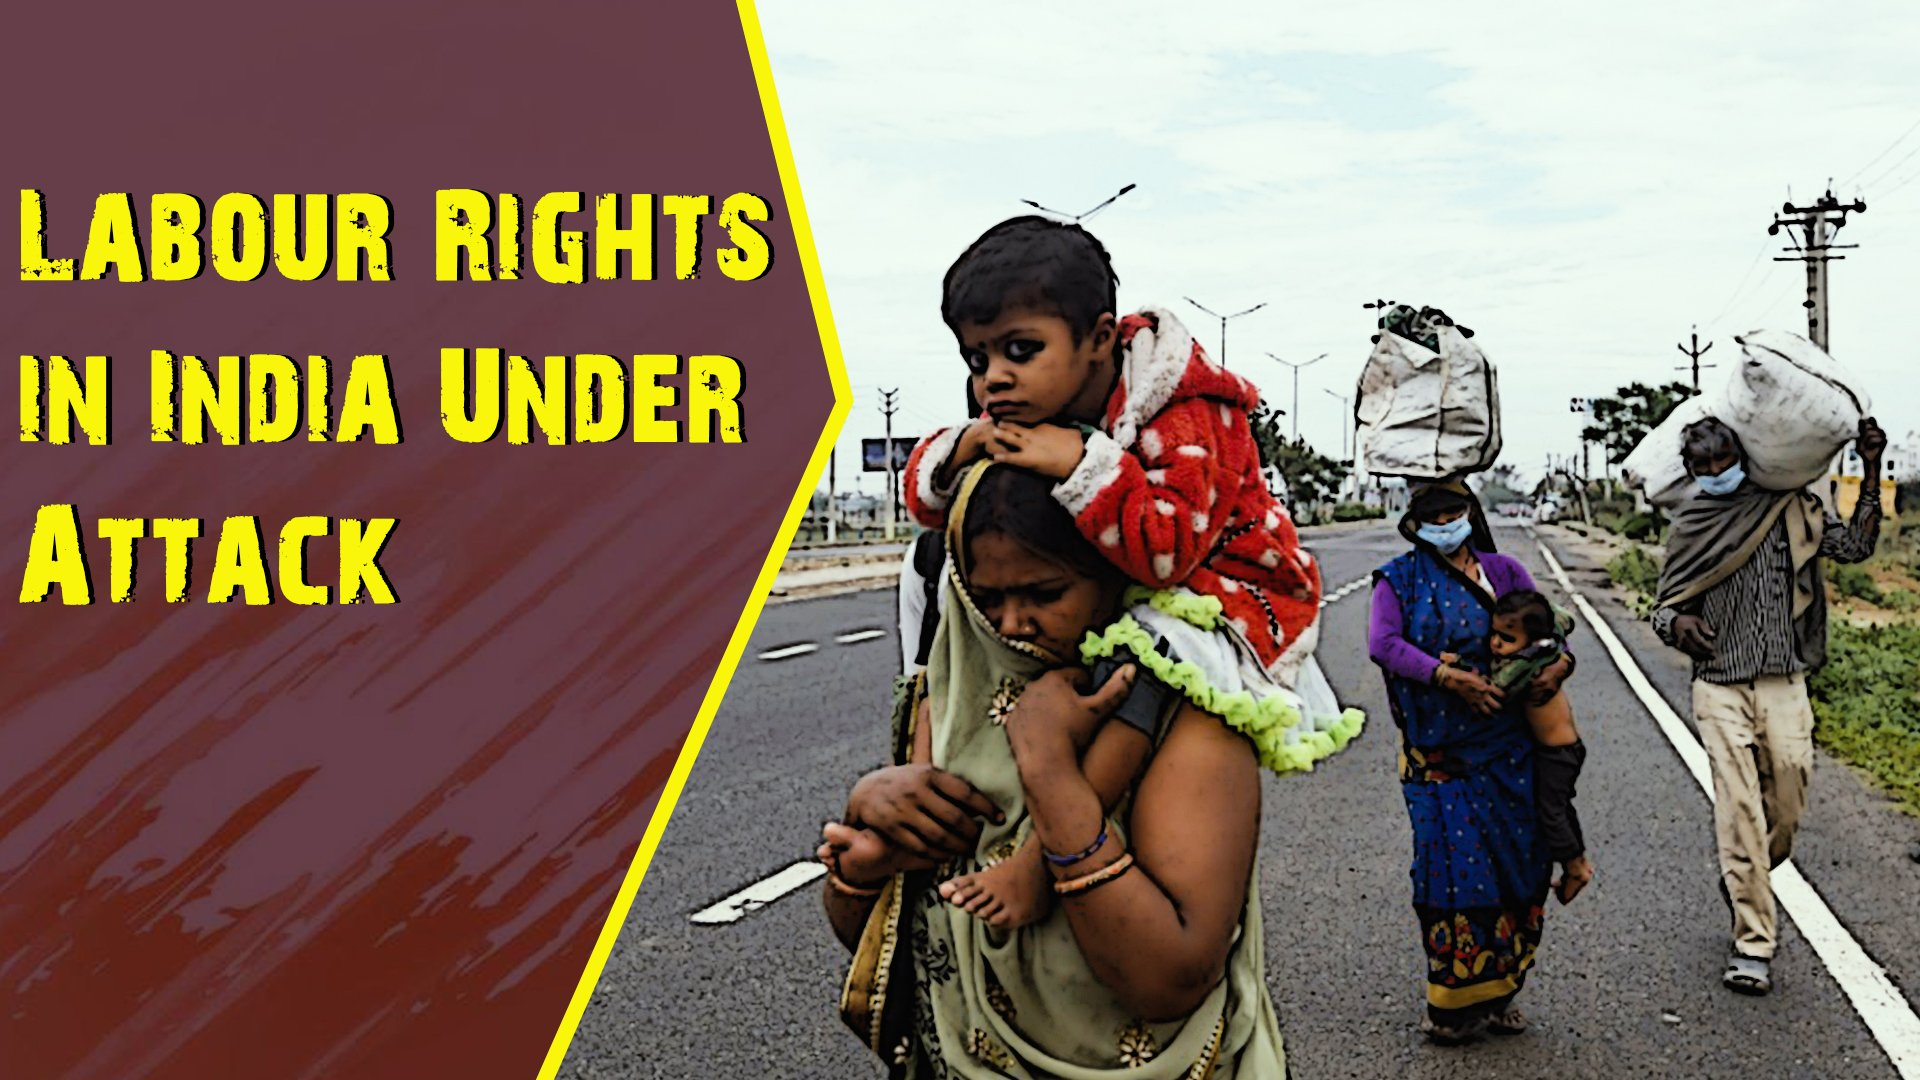 Labour Rights in India